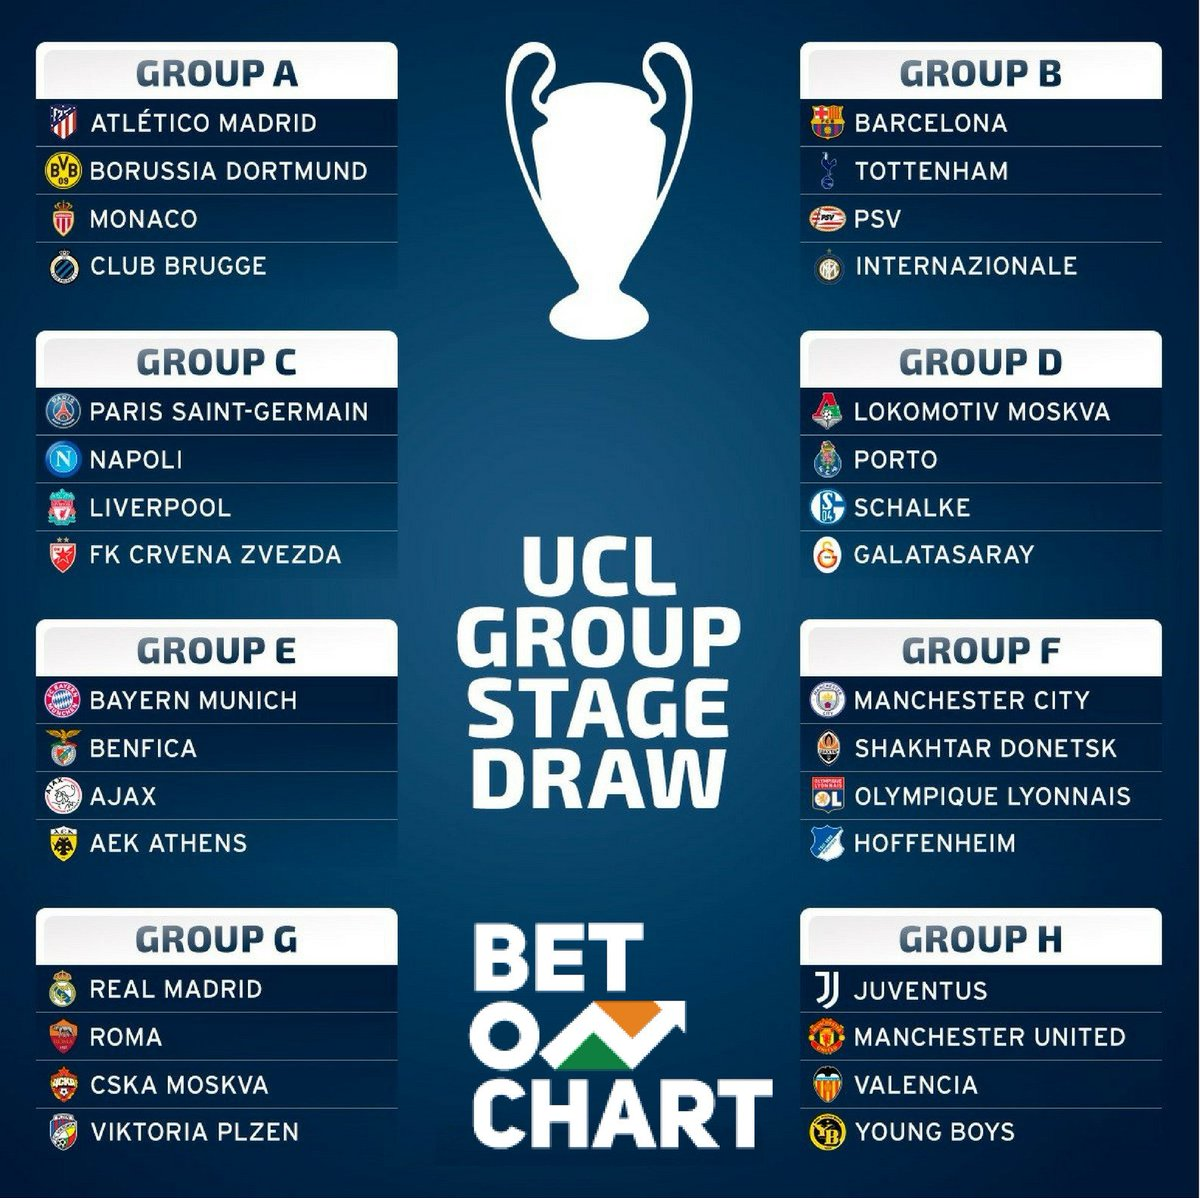 betonchart on twitter it s never been easier to get chart tokens just predict the results of the uefa champions league 2018 19 group stage write in comments what teams will get to uefa champions league